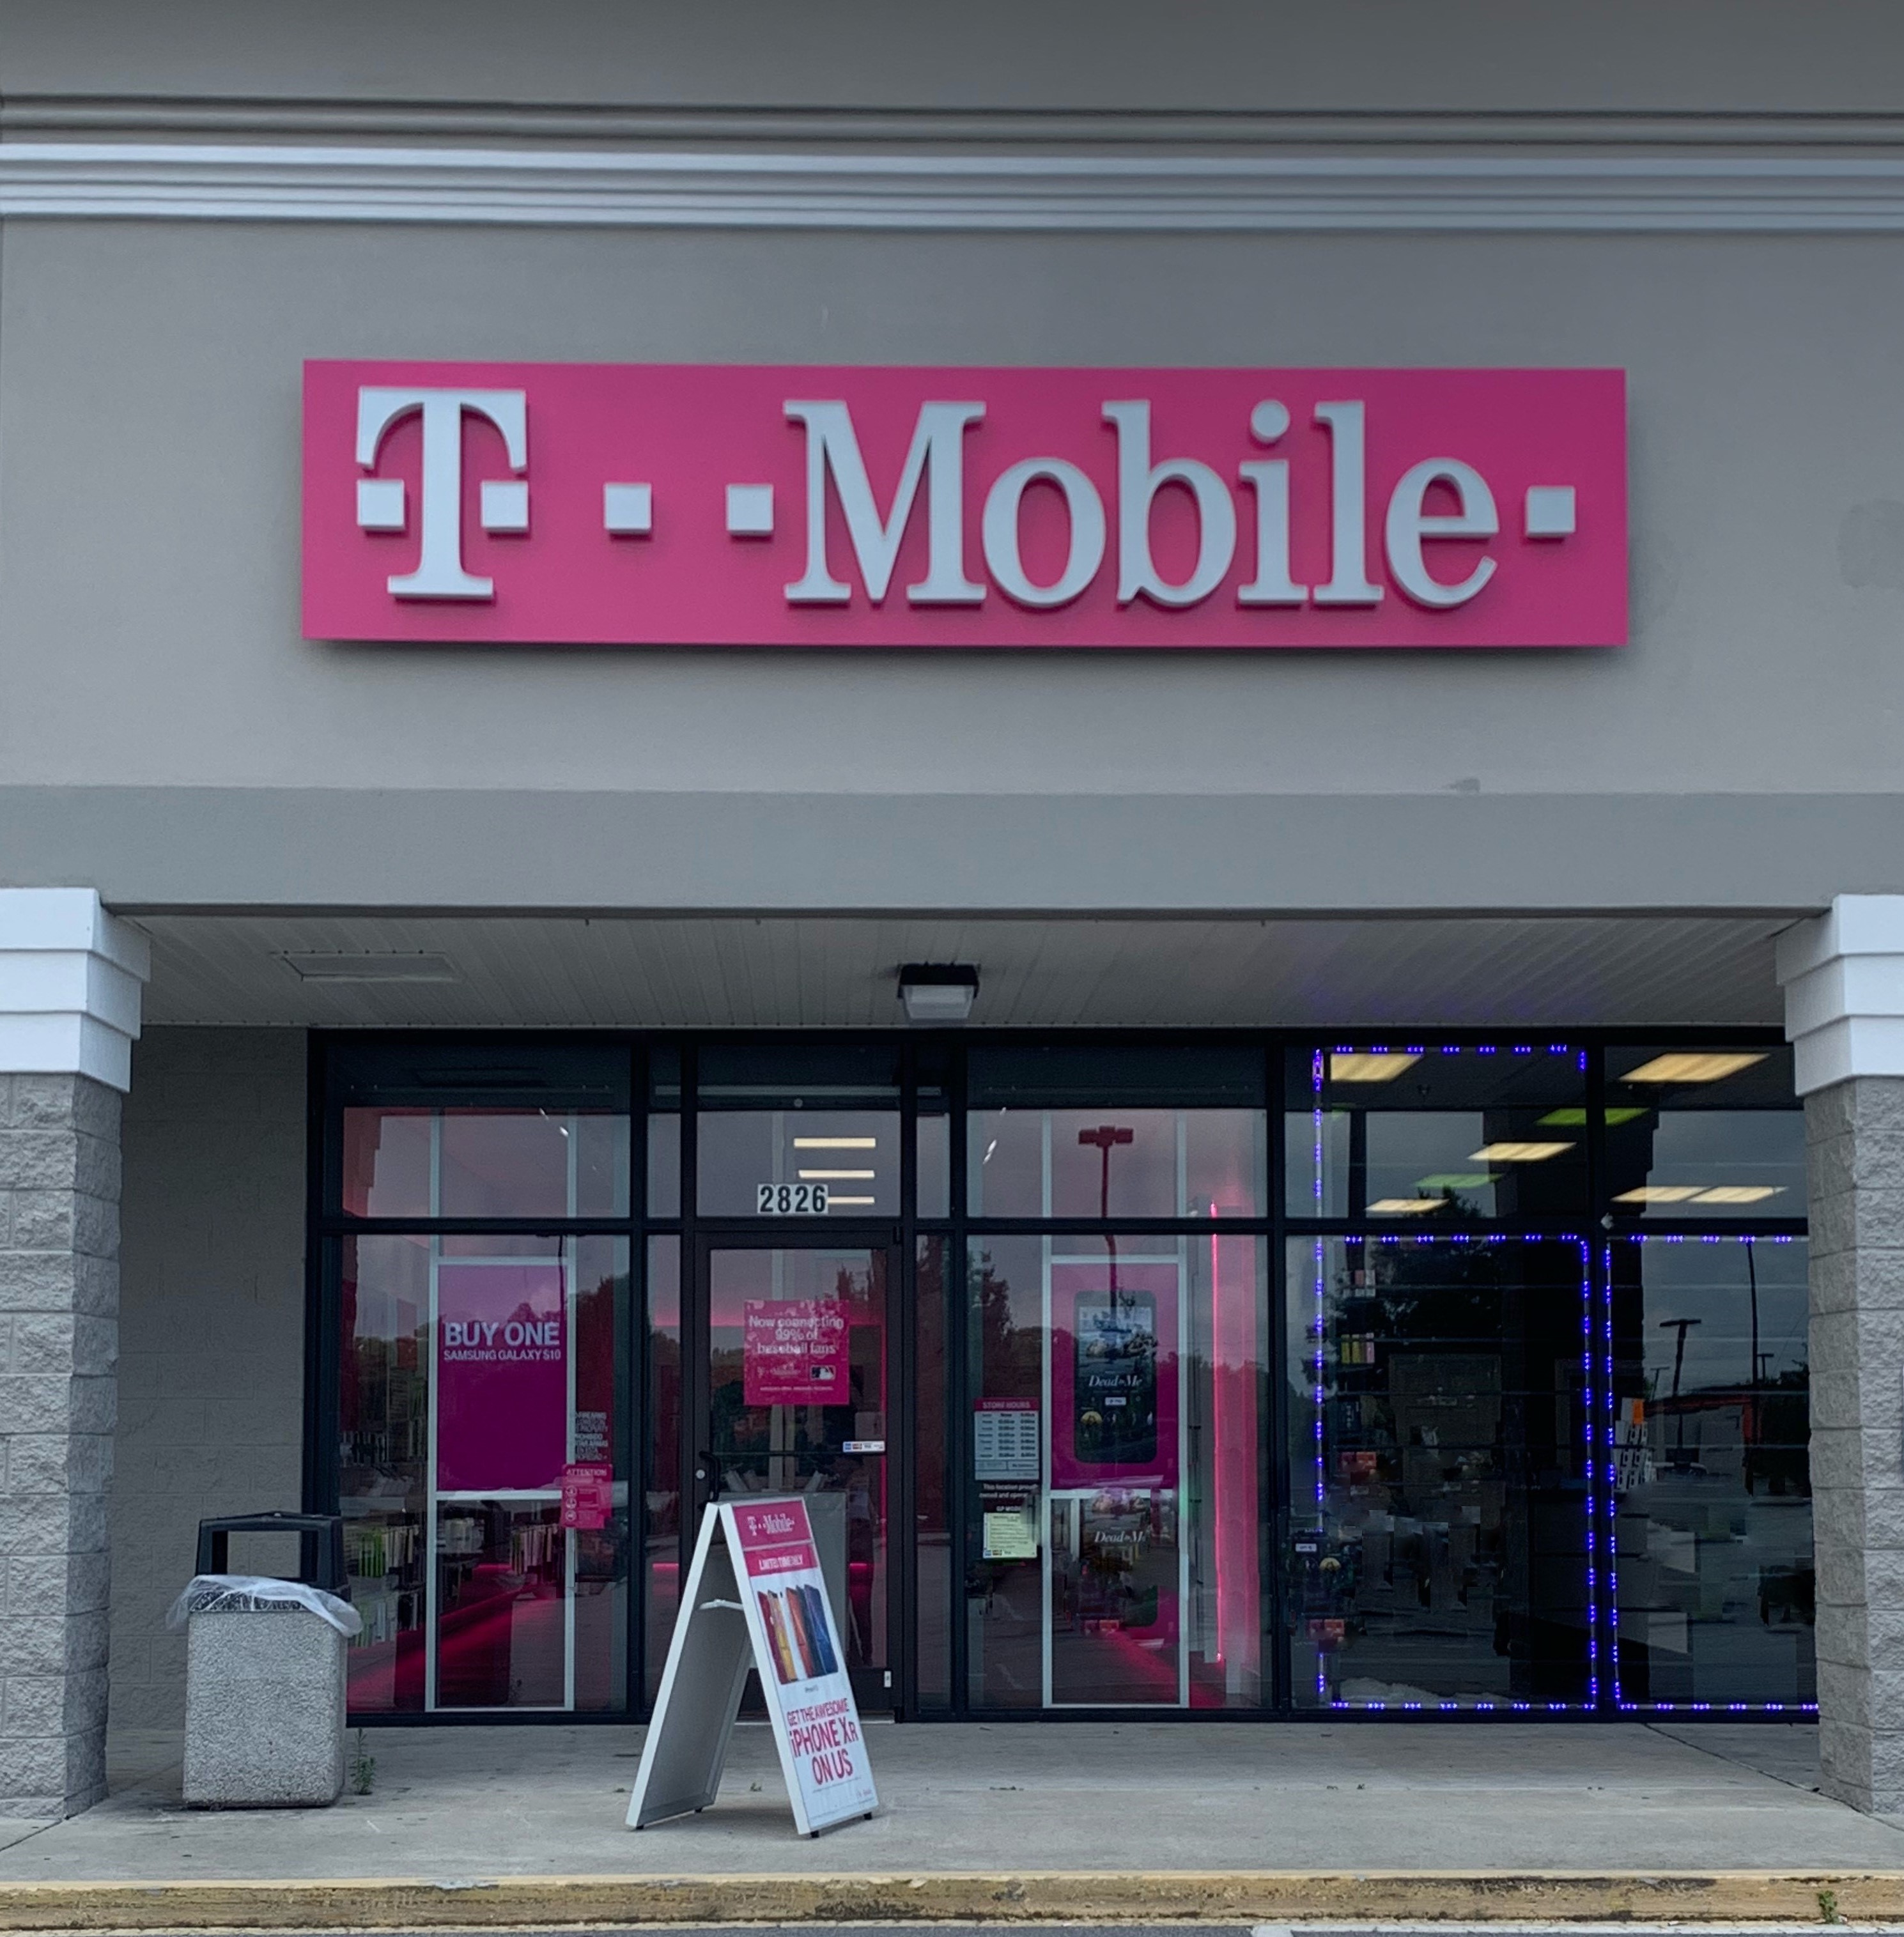 Cell Phones, Plans, and Accessories at T-Mobile 2826 Main ... on city of clinton sc map, greenwood sc map, eleanor street newberry sc city map, south carolina wineries map,